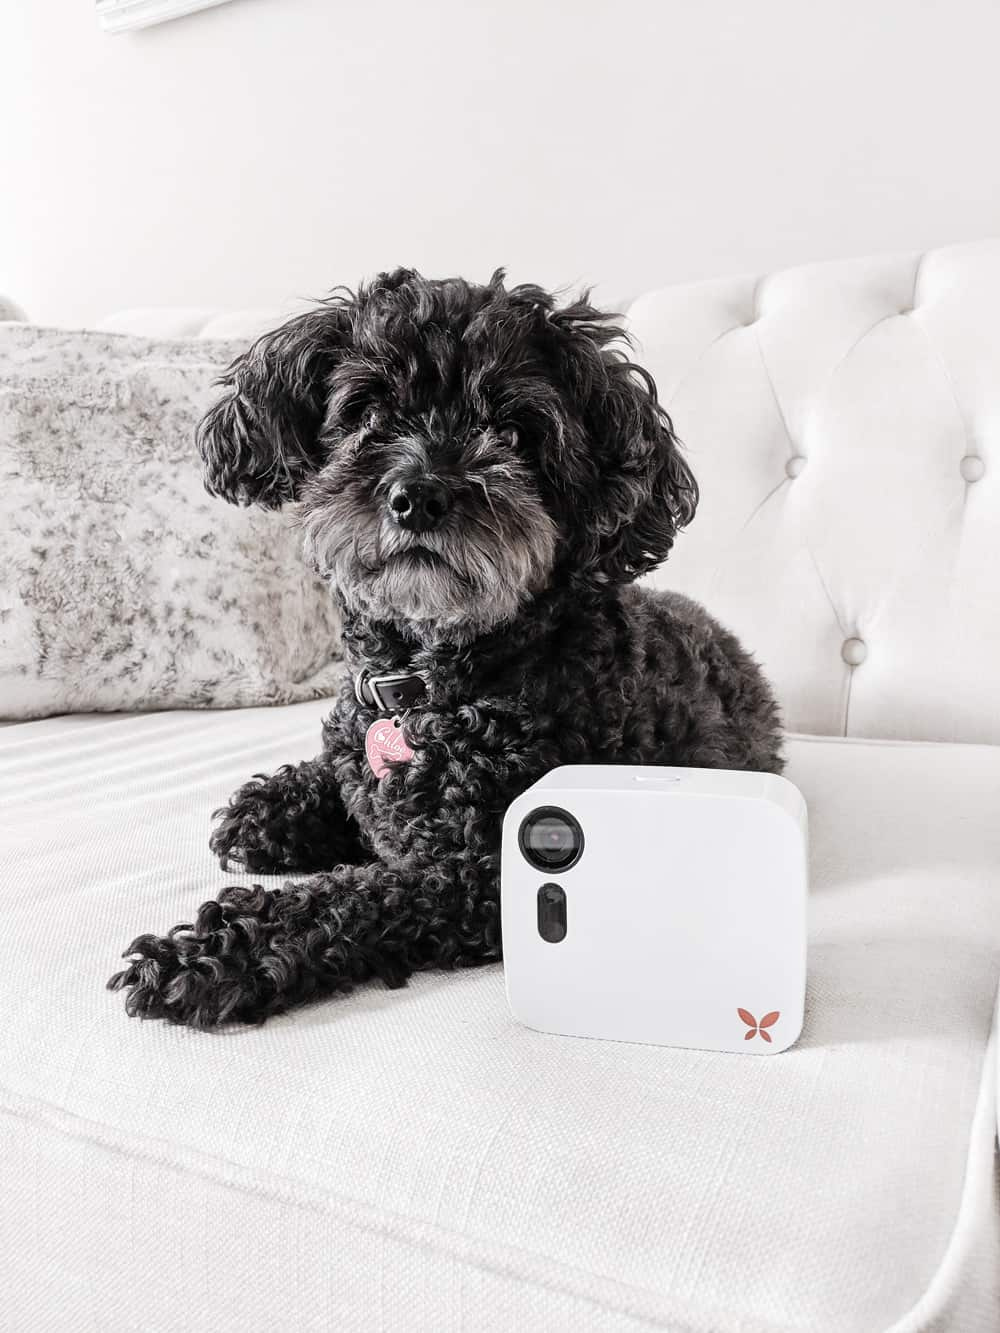 Curious to see what your pet does all day? Ooma Butterfleye allows you to keep an eye on your home, both a wifi security system and a pet camera that...